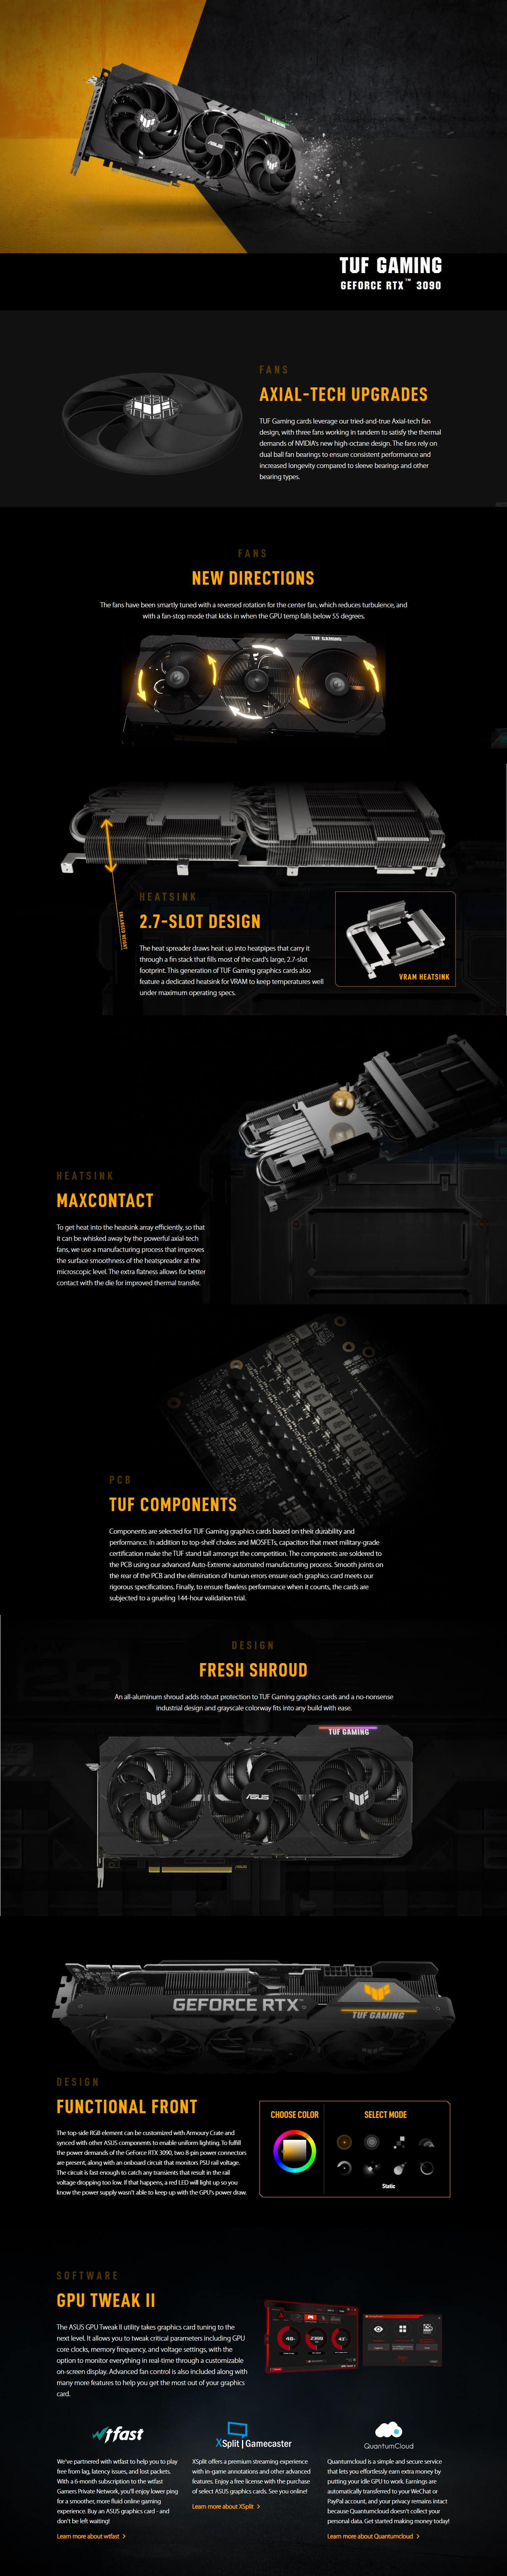 A large marketing image providing additional information about the product ASUS GeForce RTX 3090 TUF Gaming OC 24GB GDDR6X - Additional alt info not provided